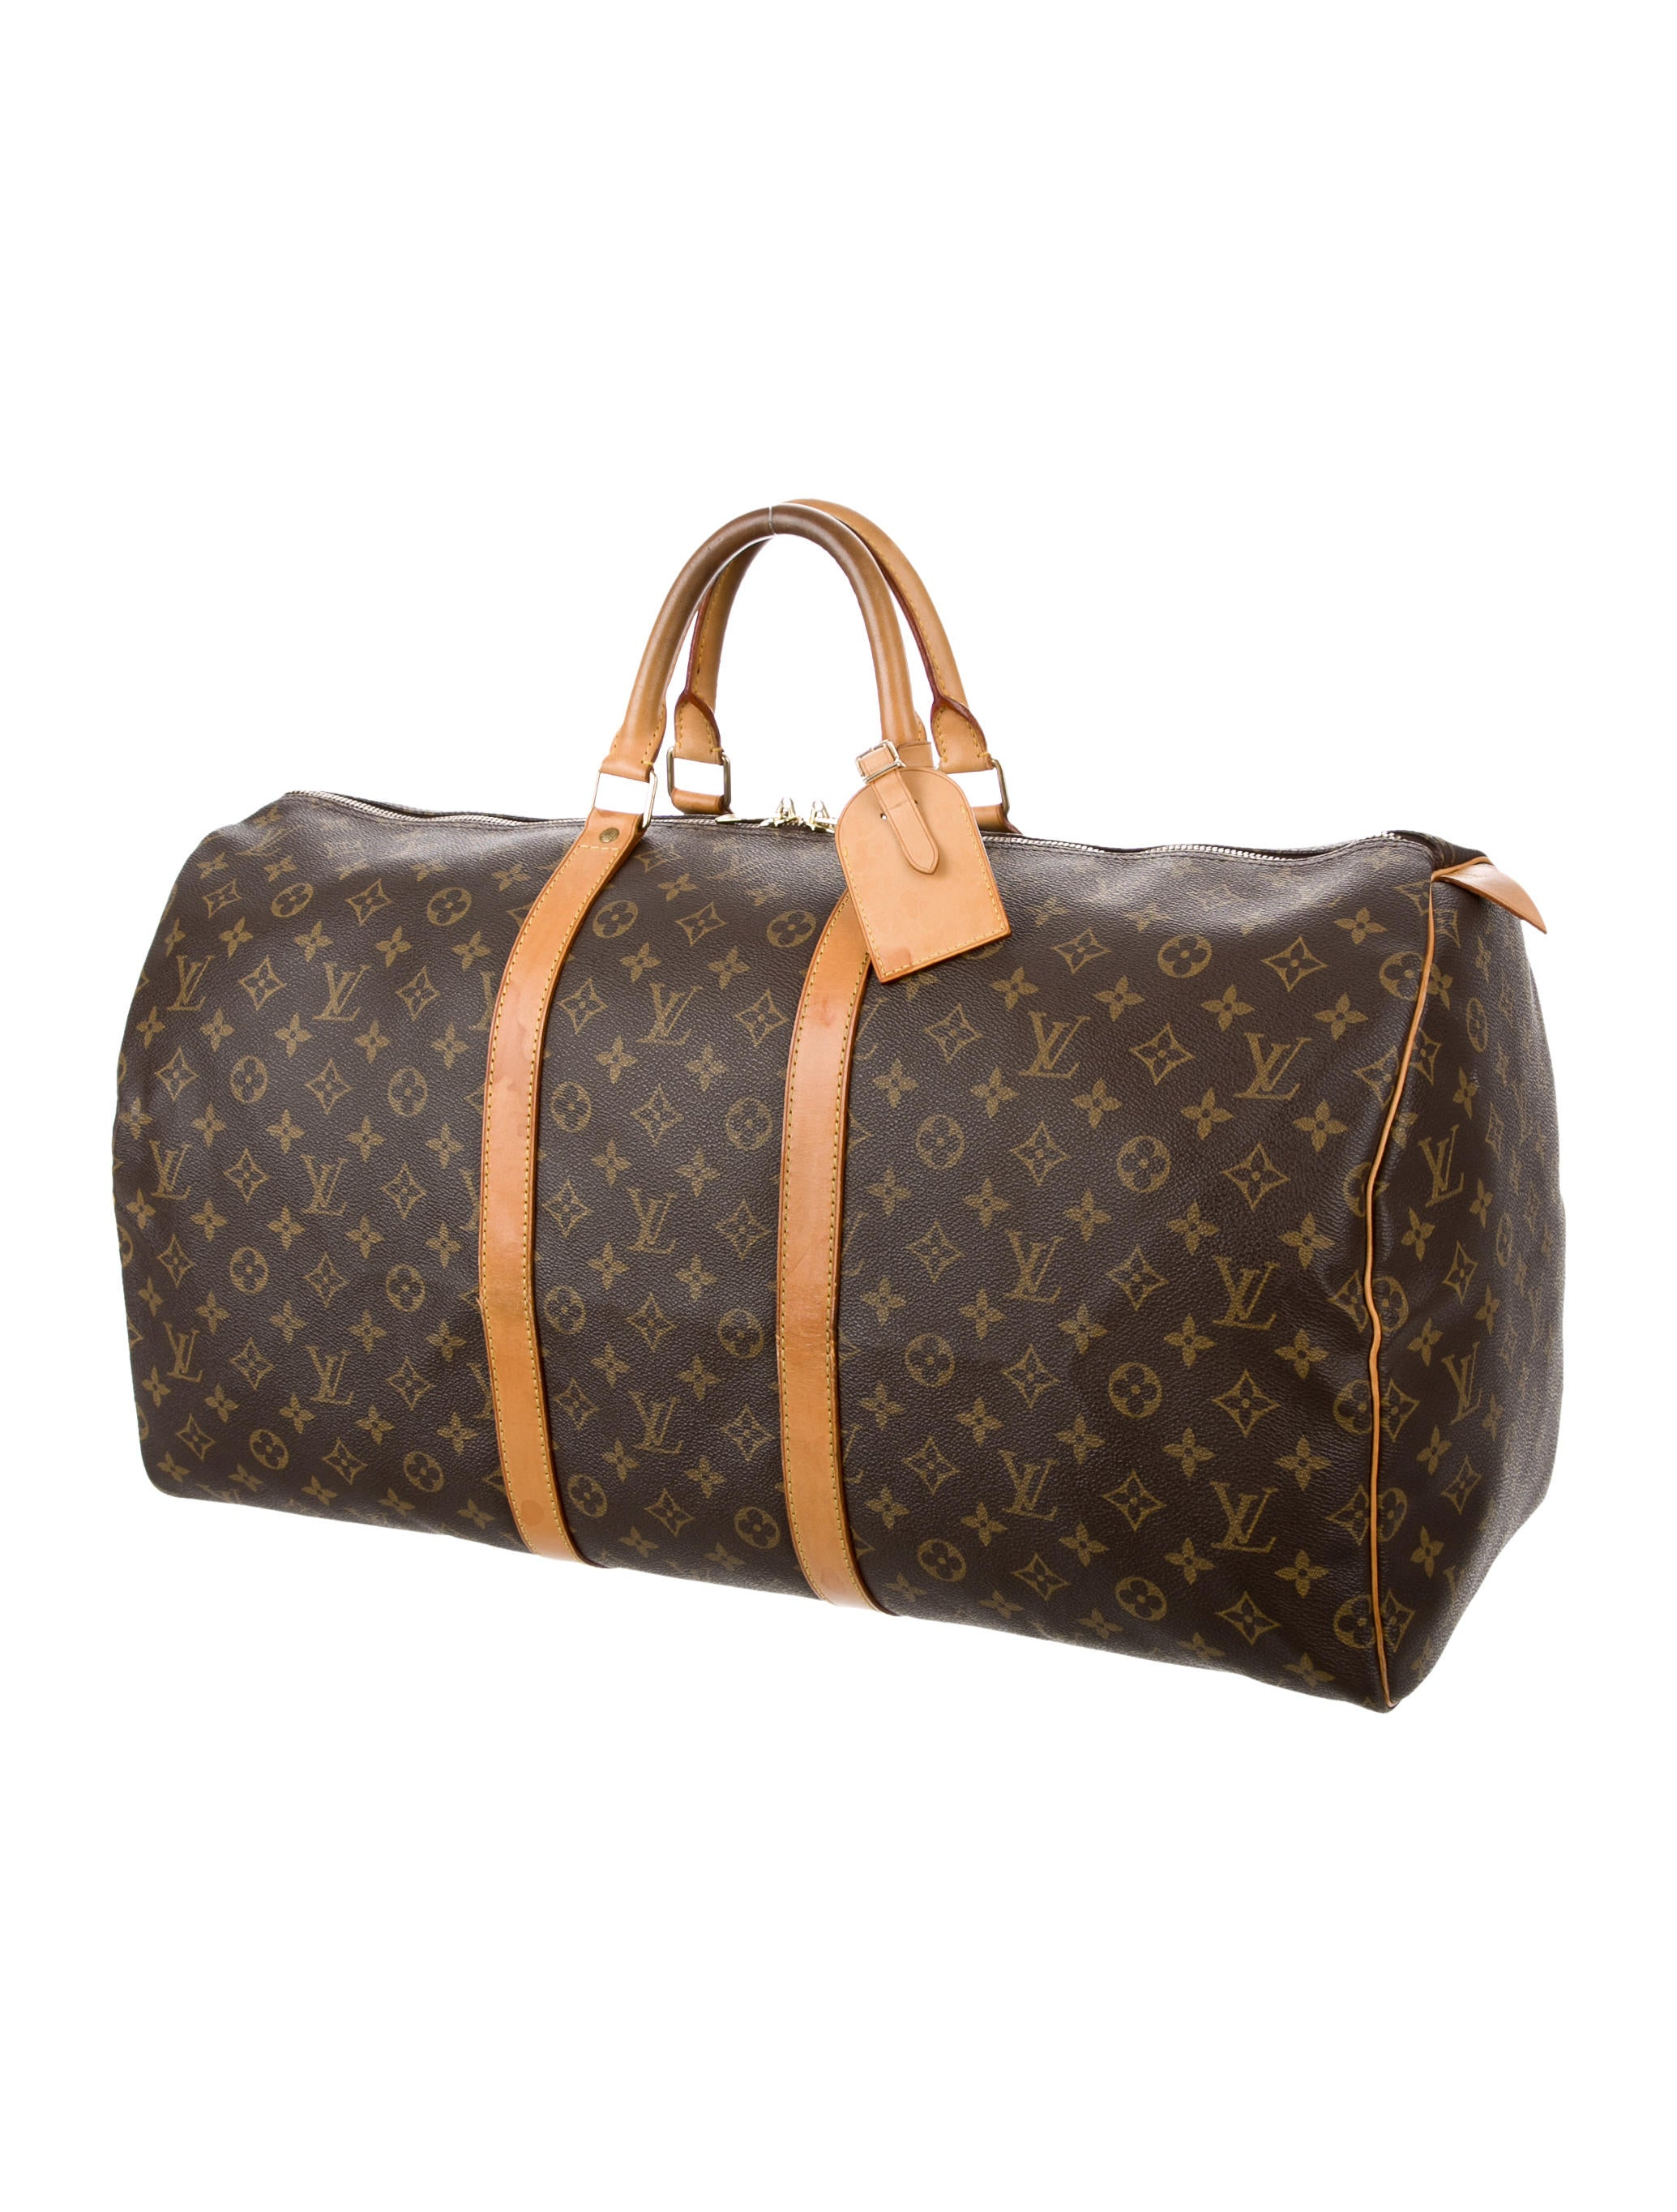 louis vuitton monogram keepall 55 bags lou121574 the realreal. Black Bedroom Furniture Sets. Home Design Ideas